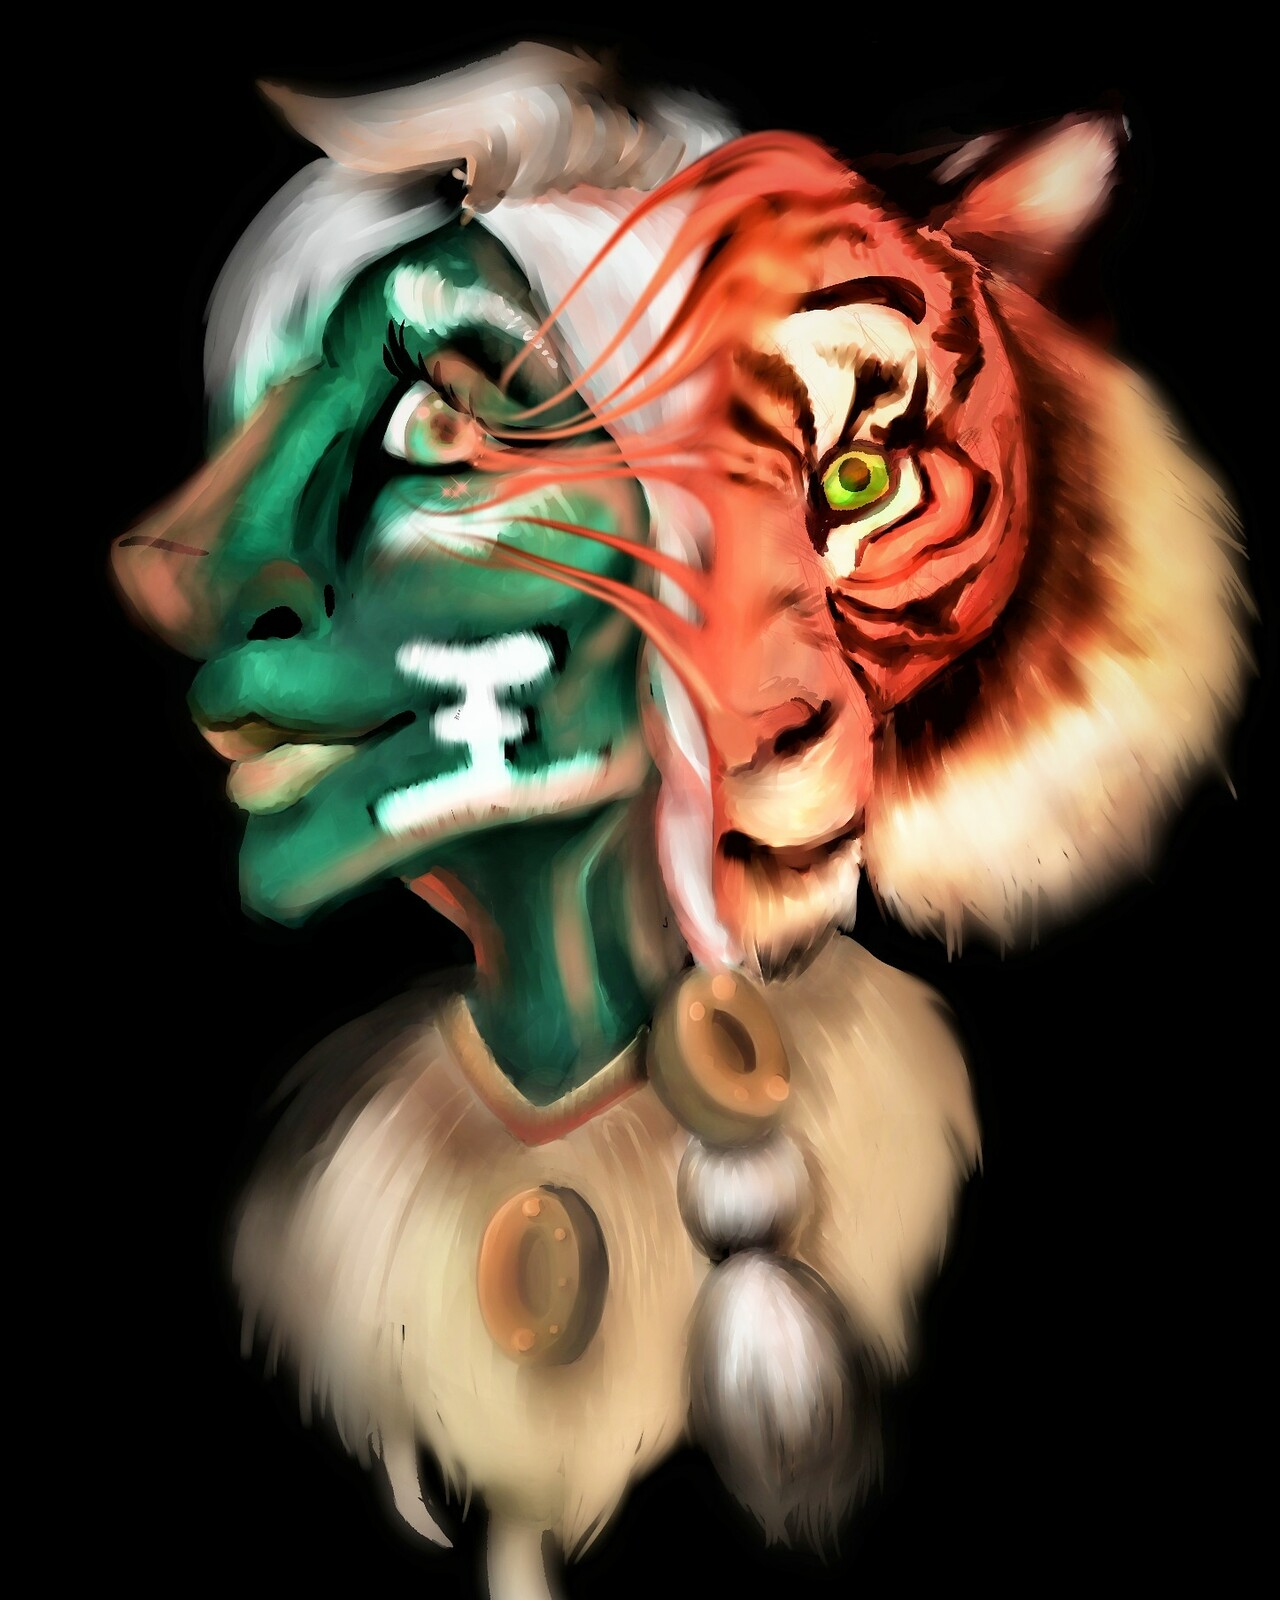 Animal spirit: tiger